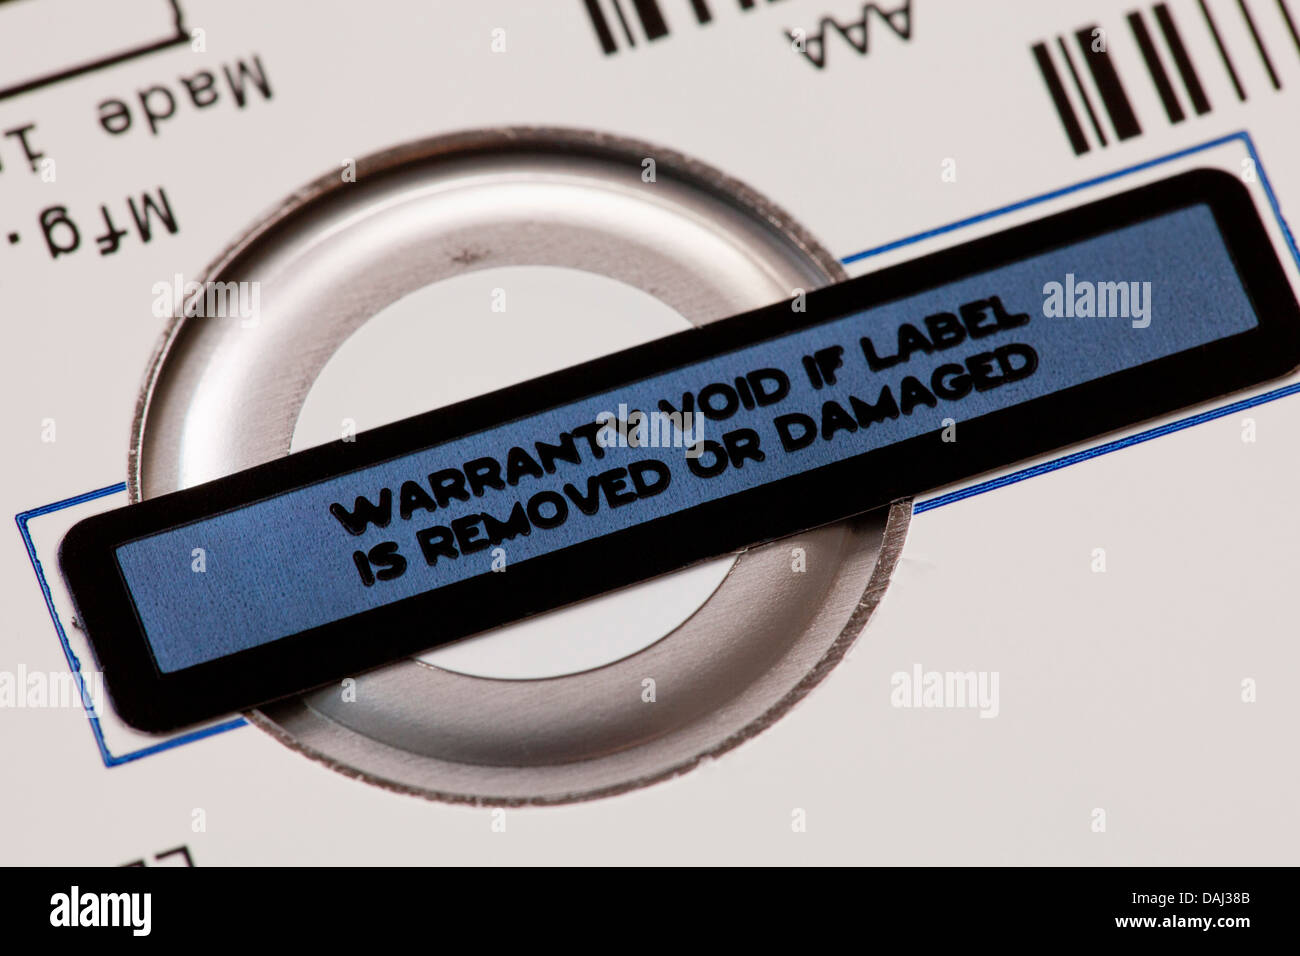 Warranty void label - Stock Image